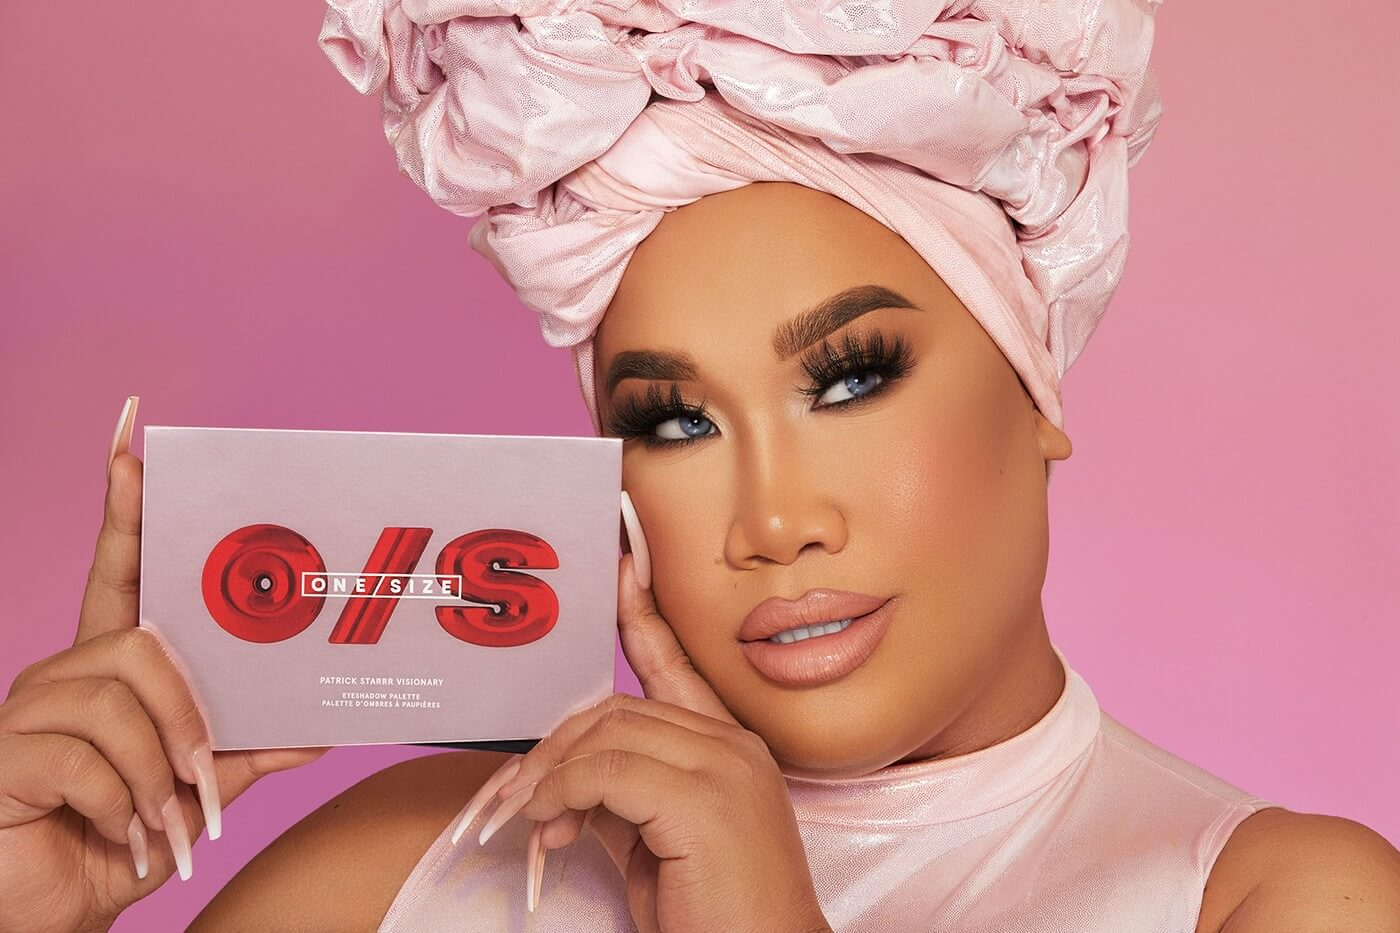 13 Filipino Fashion and Beauty Brands You Need to Know - One/Size Beauty